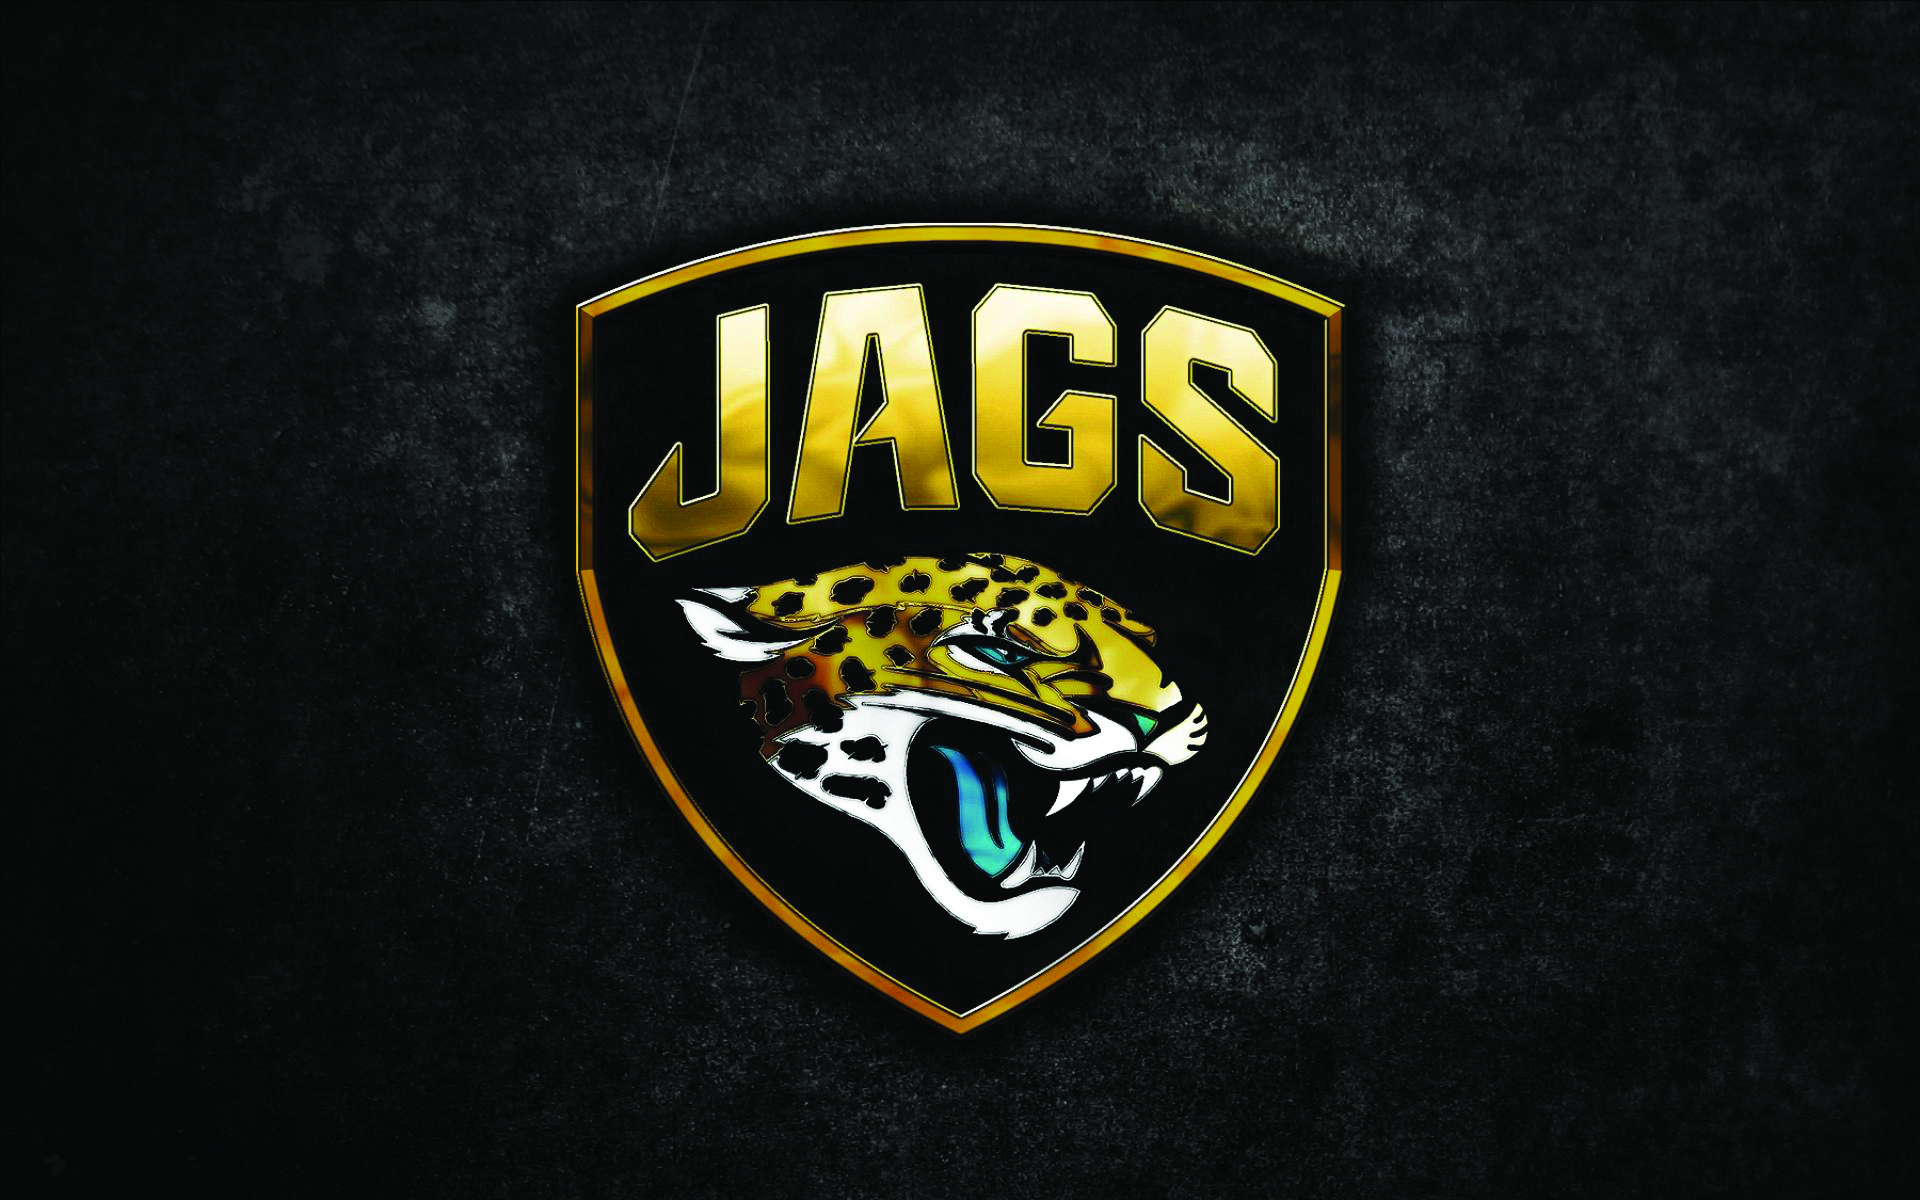 jacksonville jaguars new logo wallpaper 1200x1920. Cars Review. Best American Auto & Cars Review